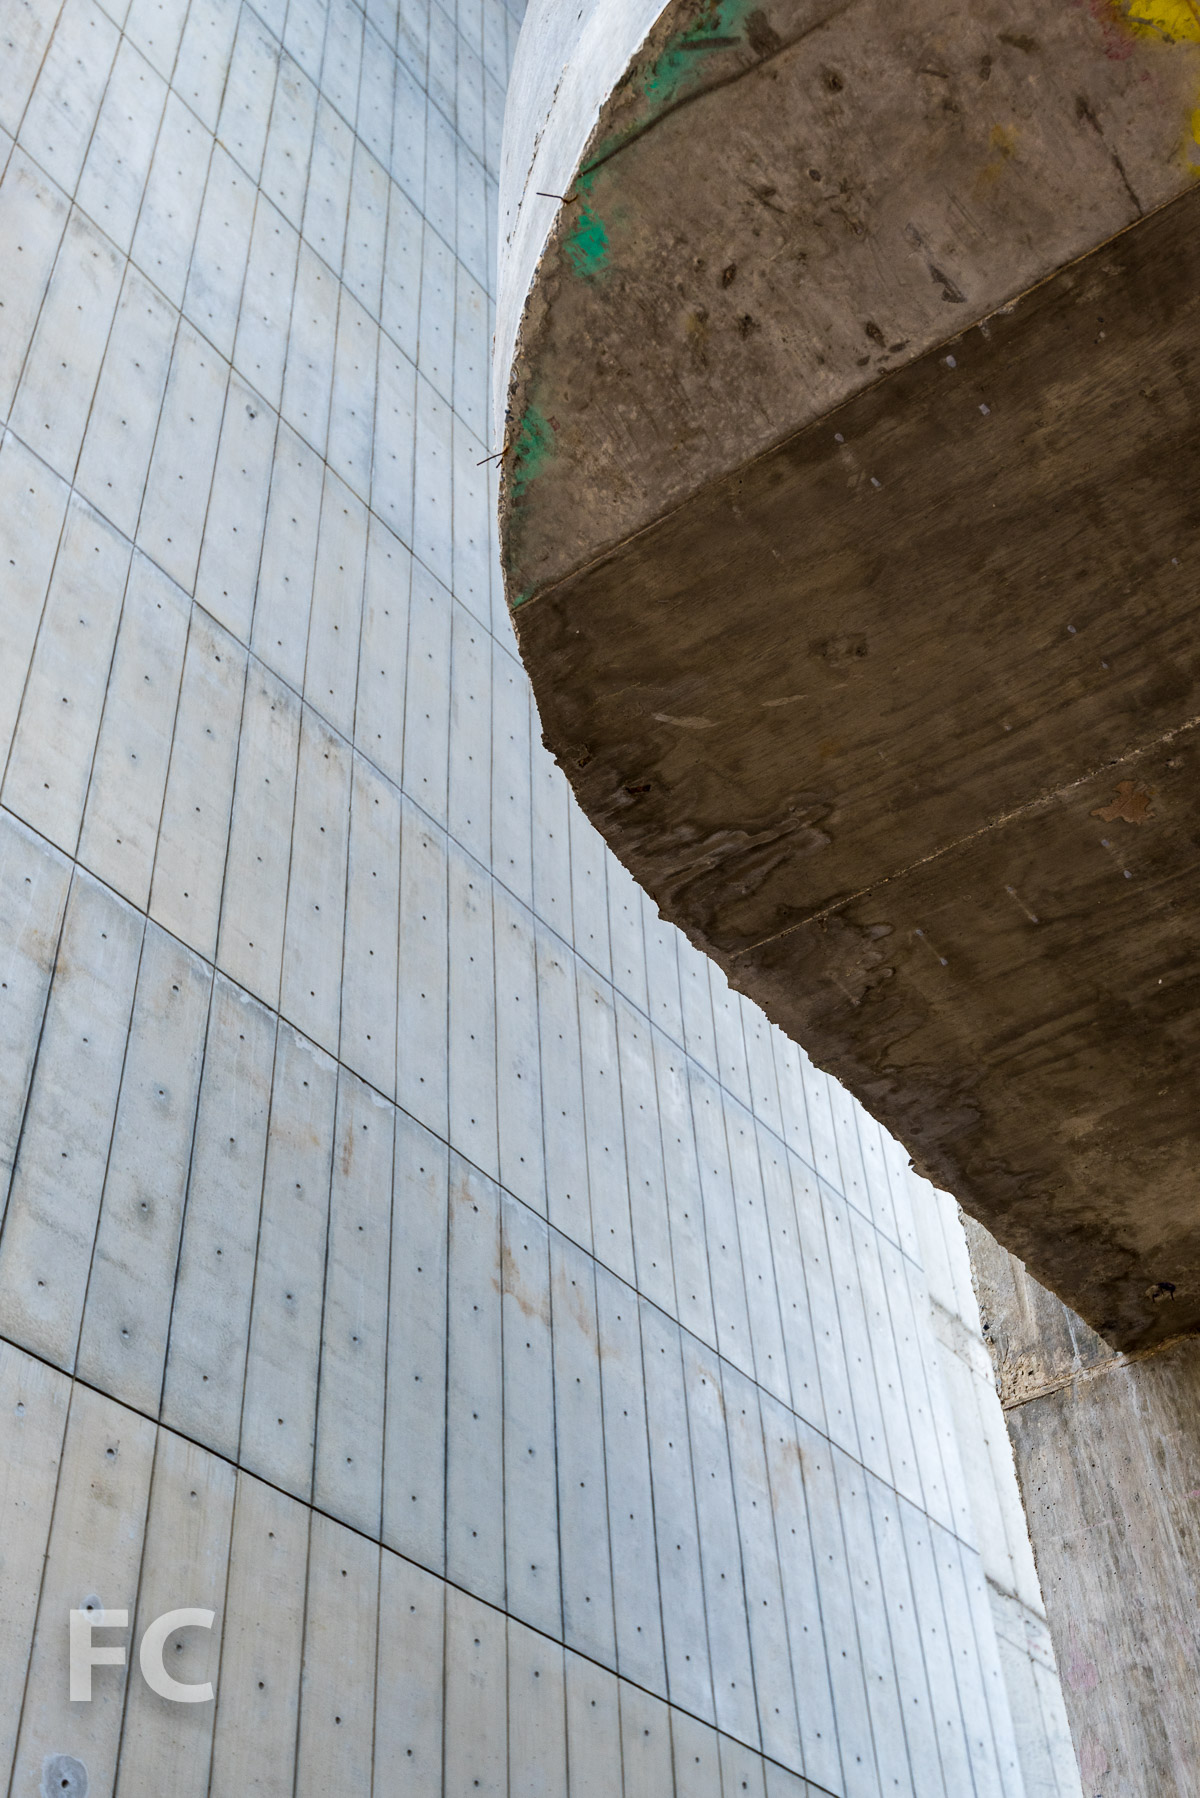 Close-up of the rounded corner of a concrete slab.